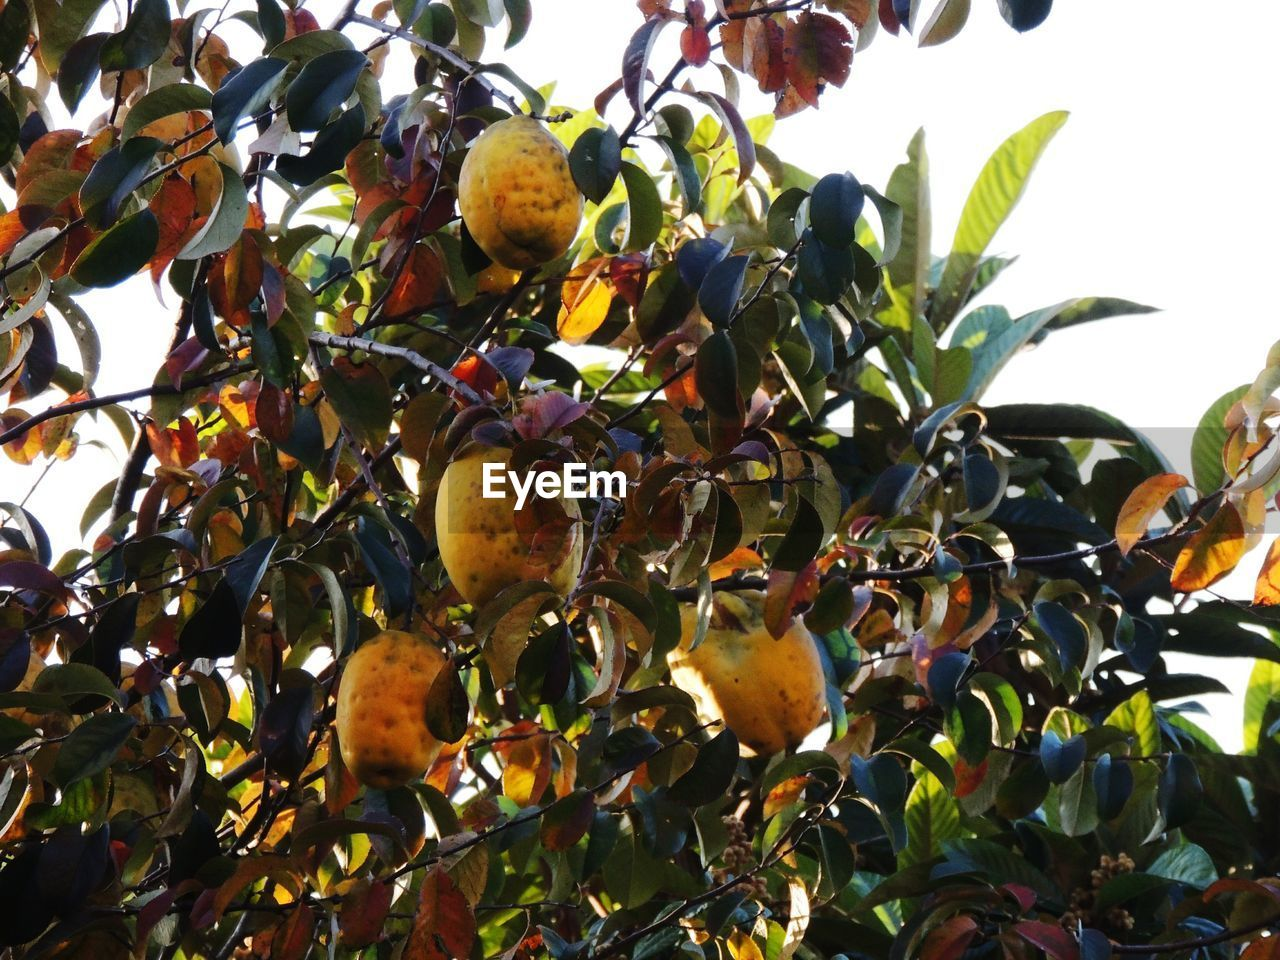 fruit, food and drink, food, leaf, tree, growth, healthy eating, freshness, day, outdoors, no people, citrus fruit, low angle view, nature, branch, beauty in nature, close-up, sky